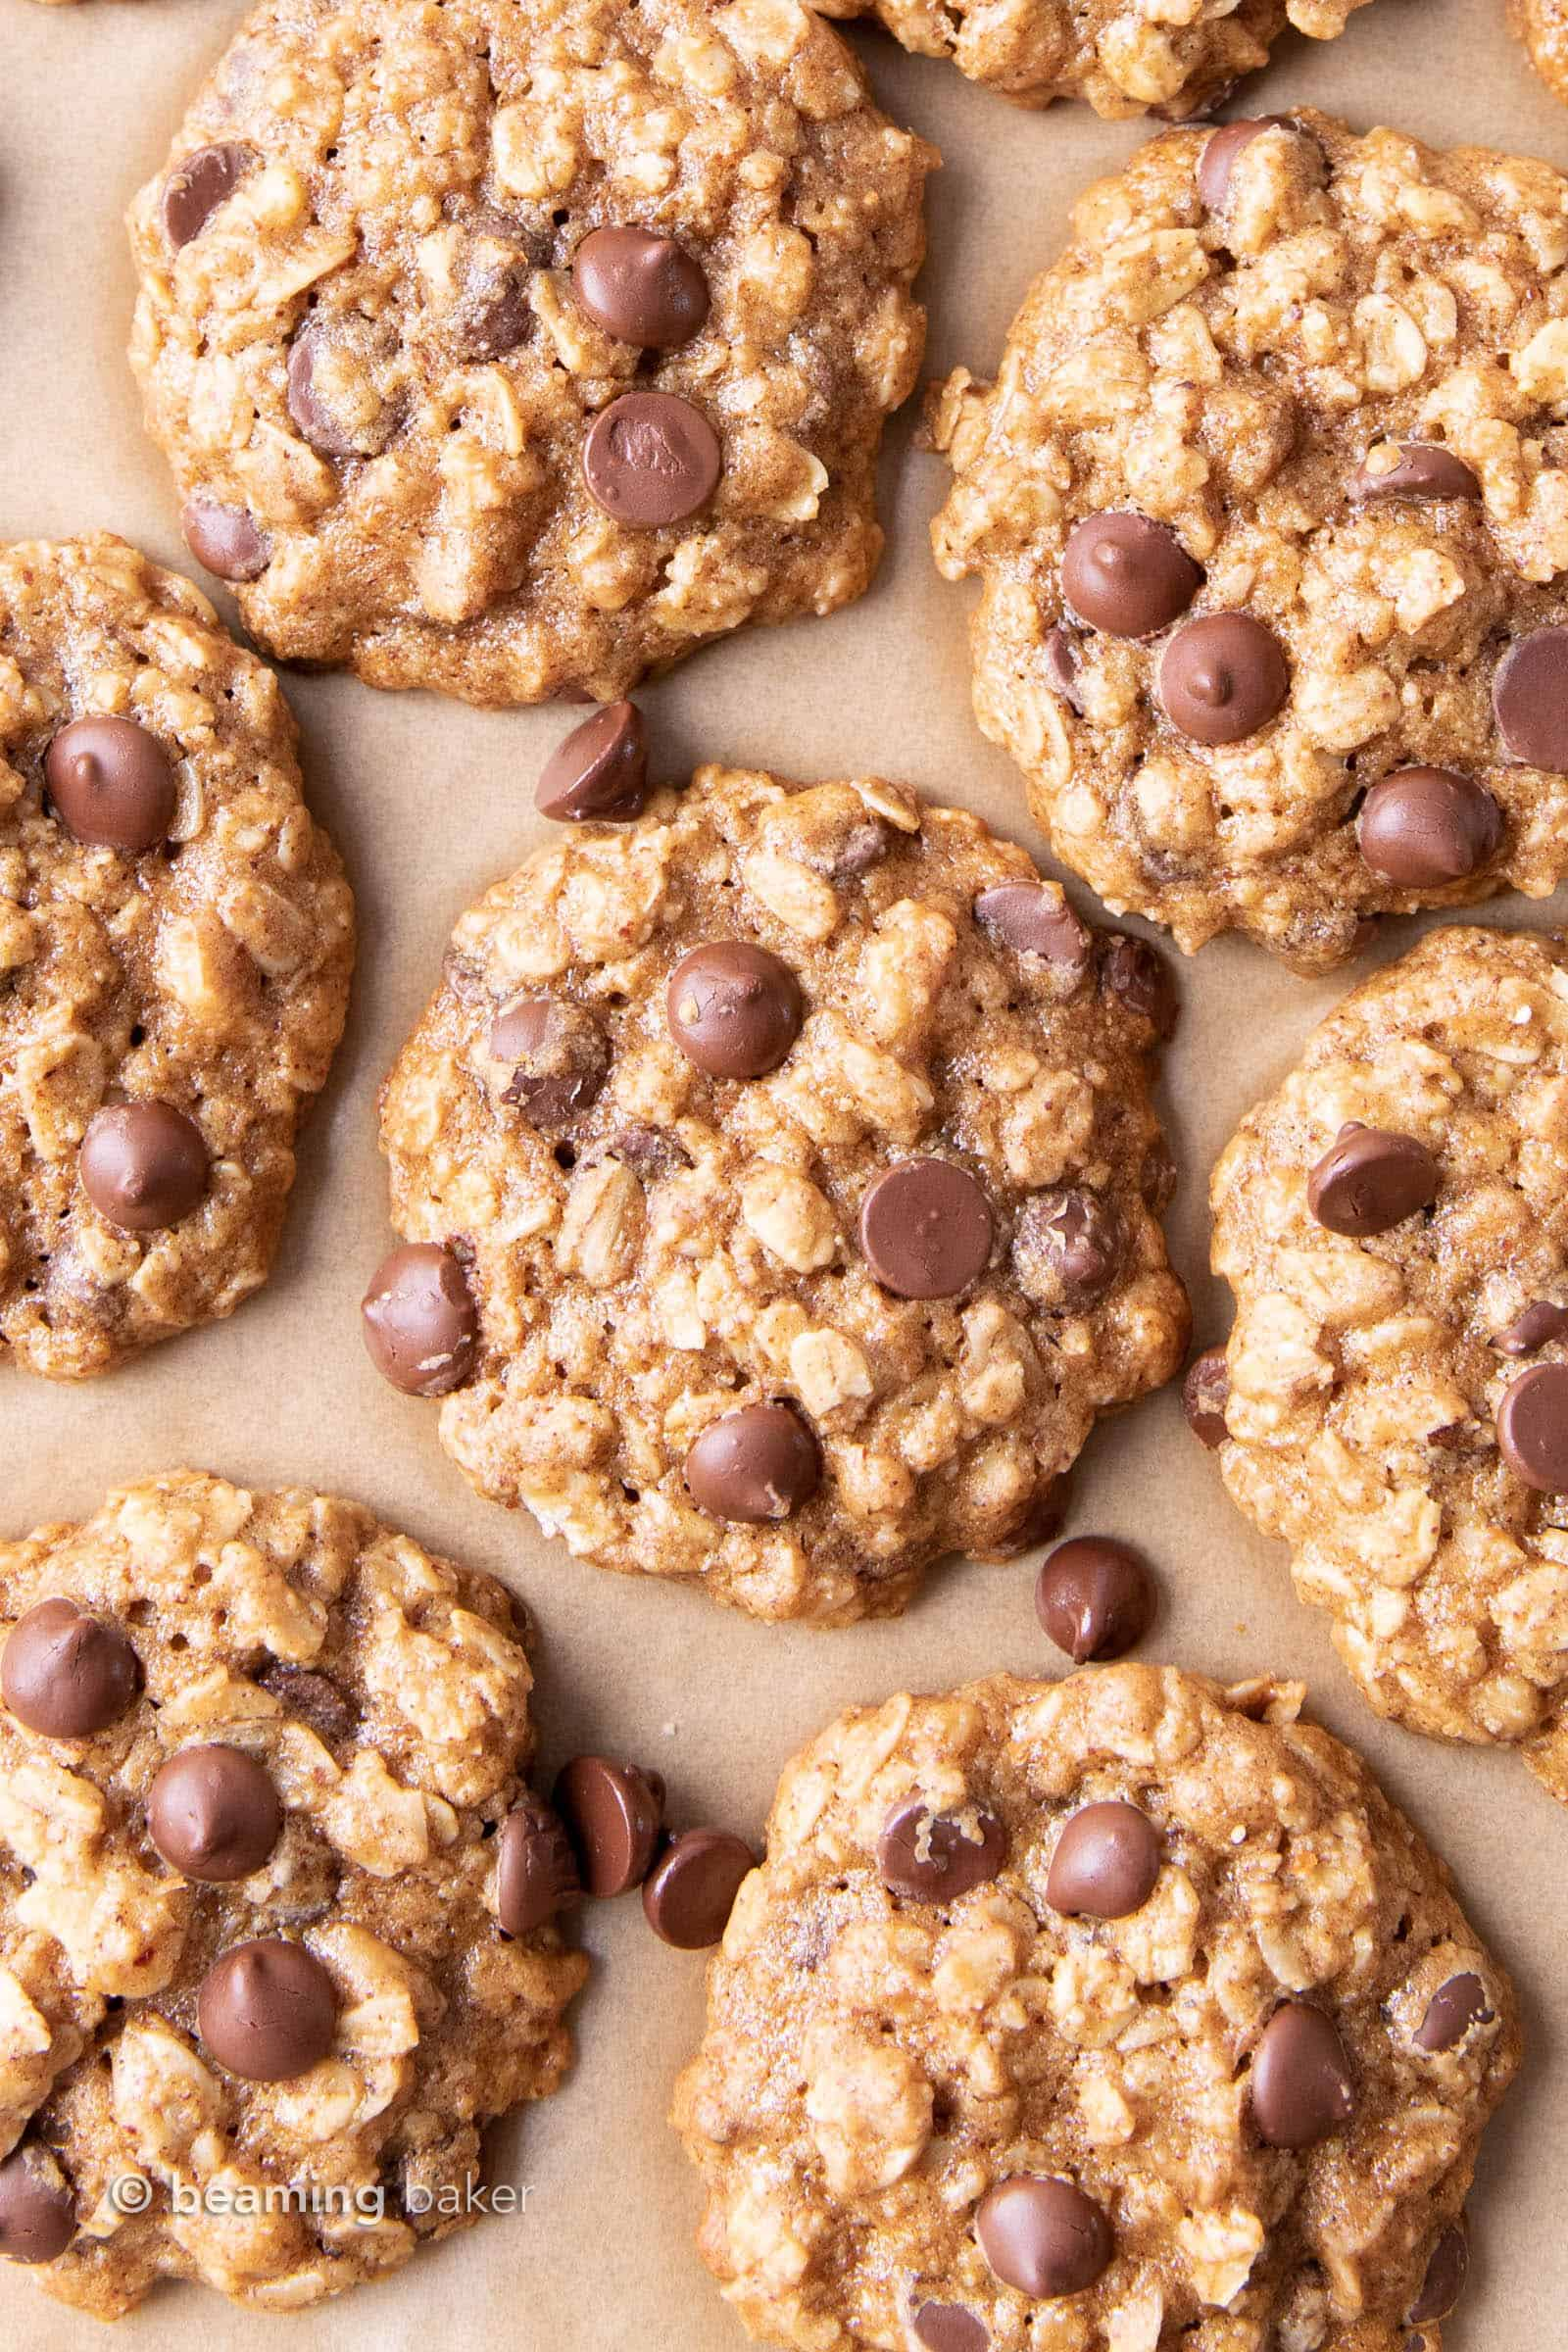 Easy Healthy Oatmeal Chocolate Chip Cookies: this easy healthy oatmeal chocolate chip cookies recipe yields chewy cookies with crispy edges and lots of chocolate chips! Vegan, Gluten-Free, Dairy-Free, Healthy. #Healthy #OatmealCookies #HealthyCookies #ChocolateChip   Recipe at BeamingBaker.com